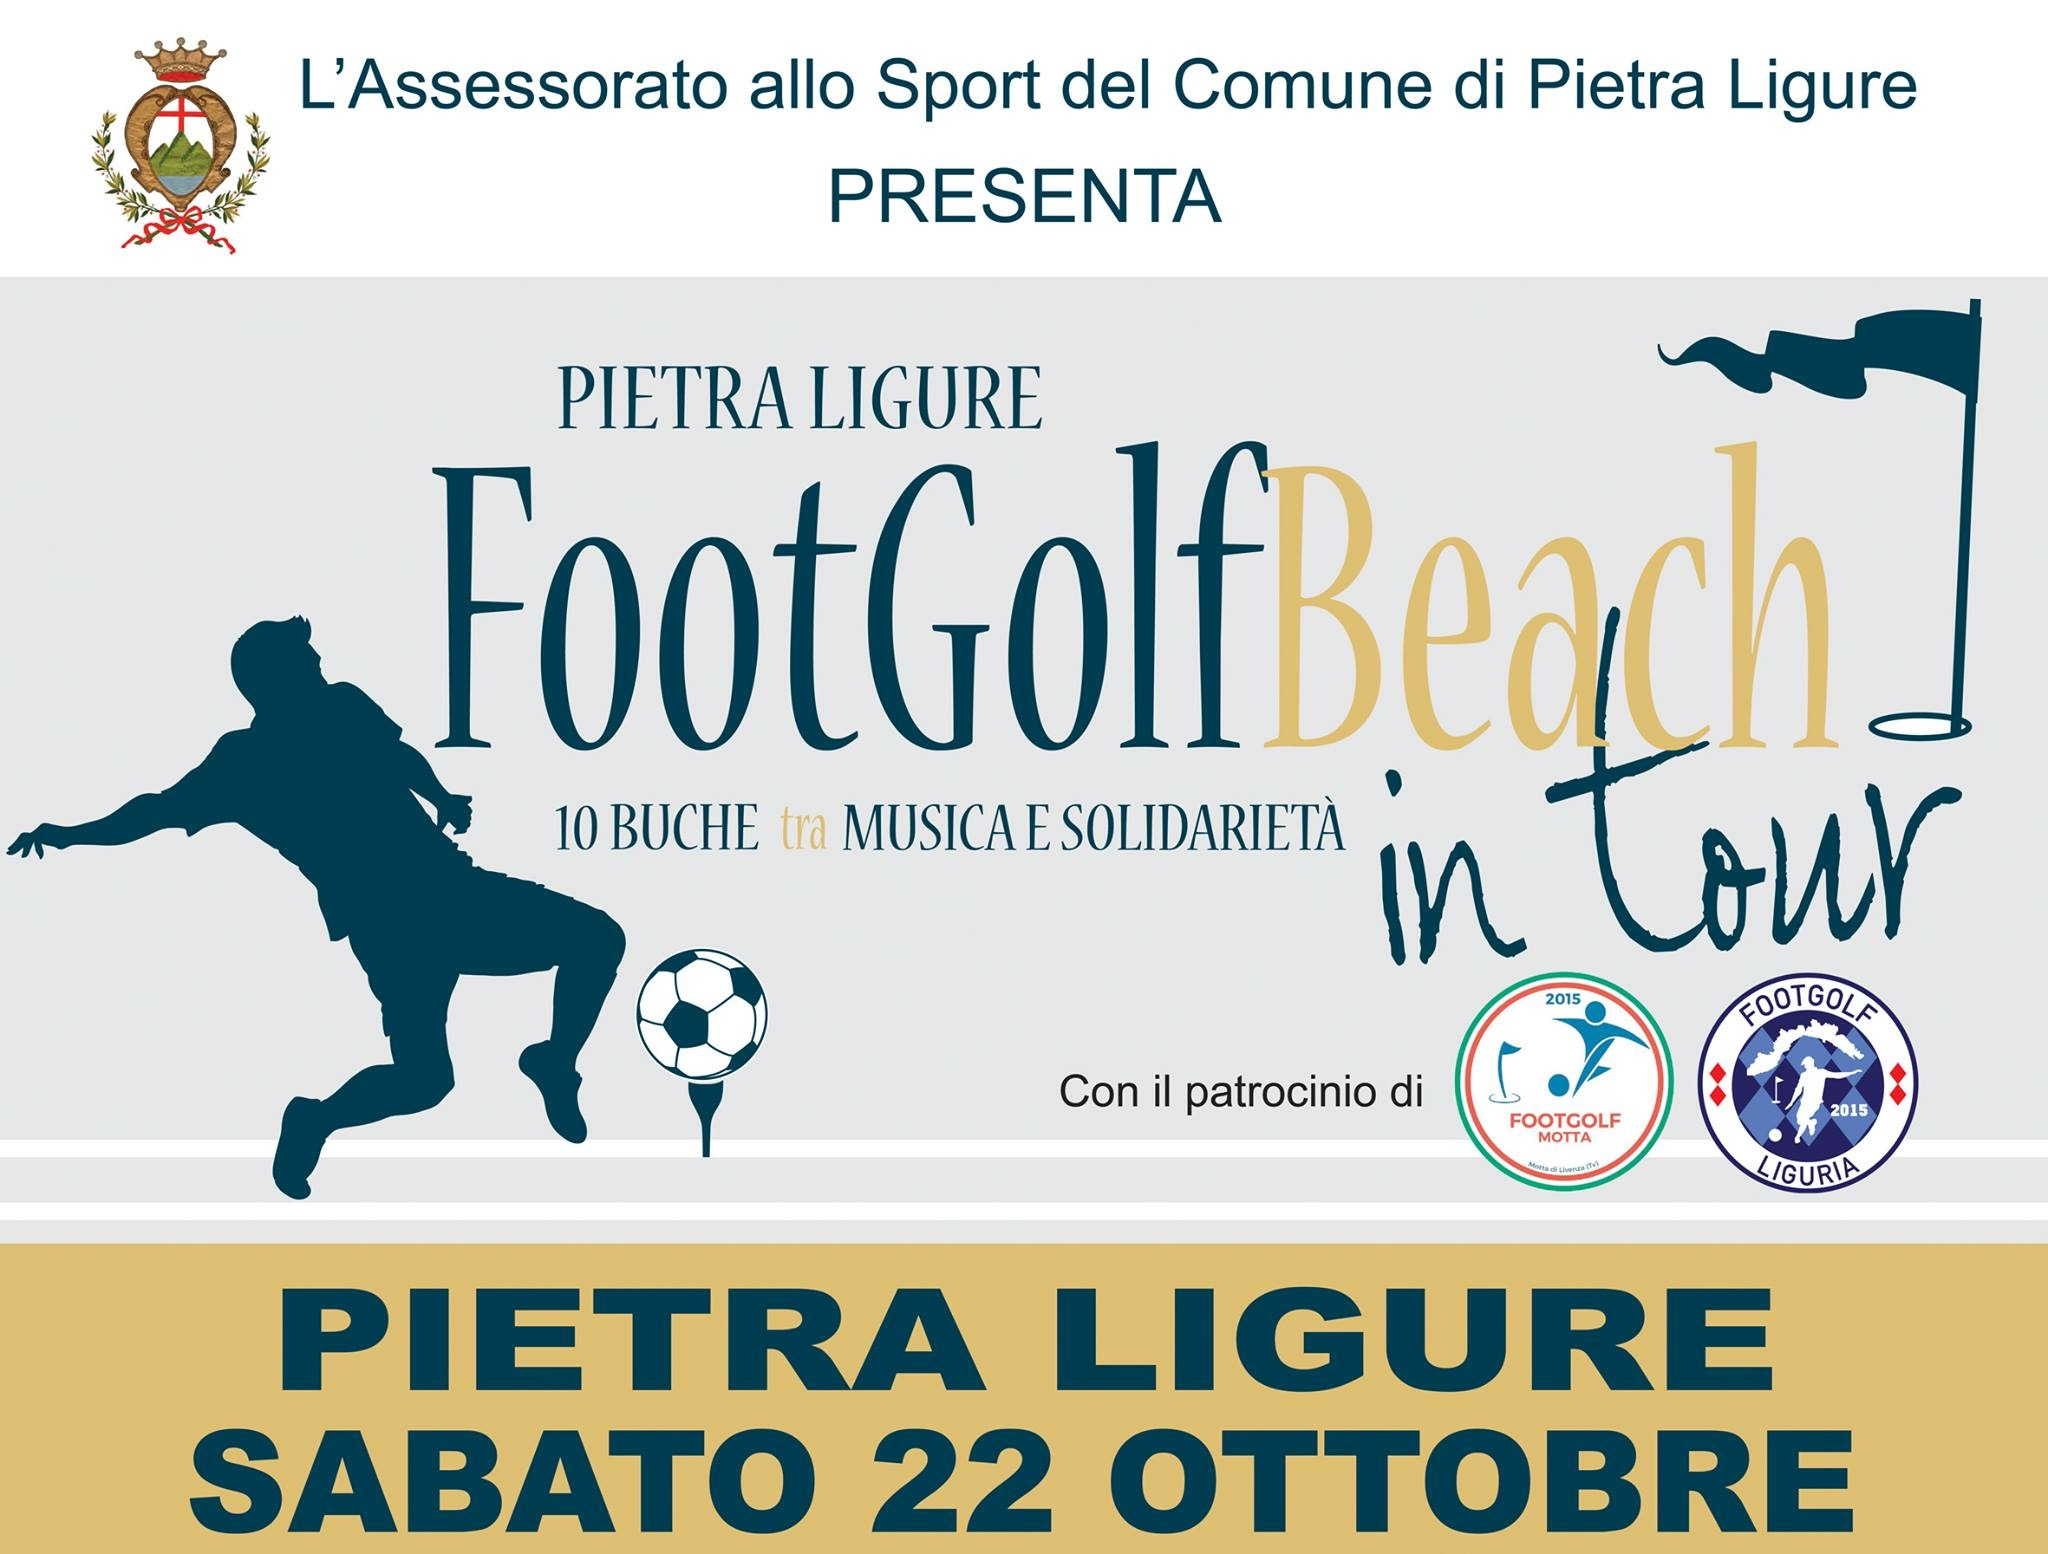 FOOTGOLF BEACH IN TOUR A PIETRA LIGURE